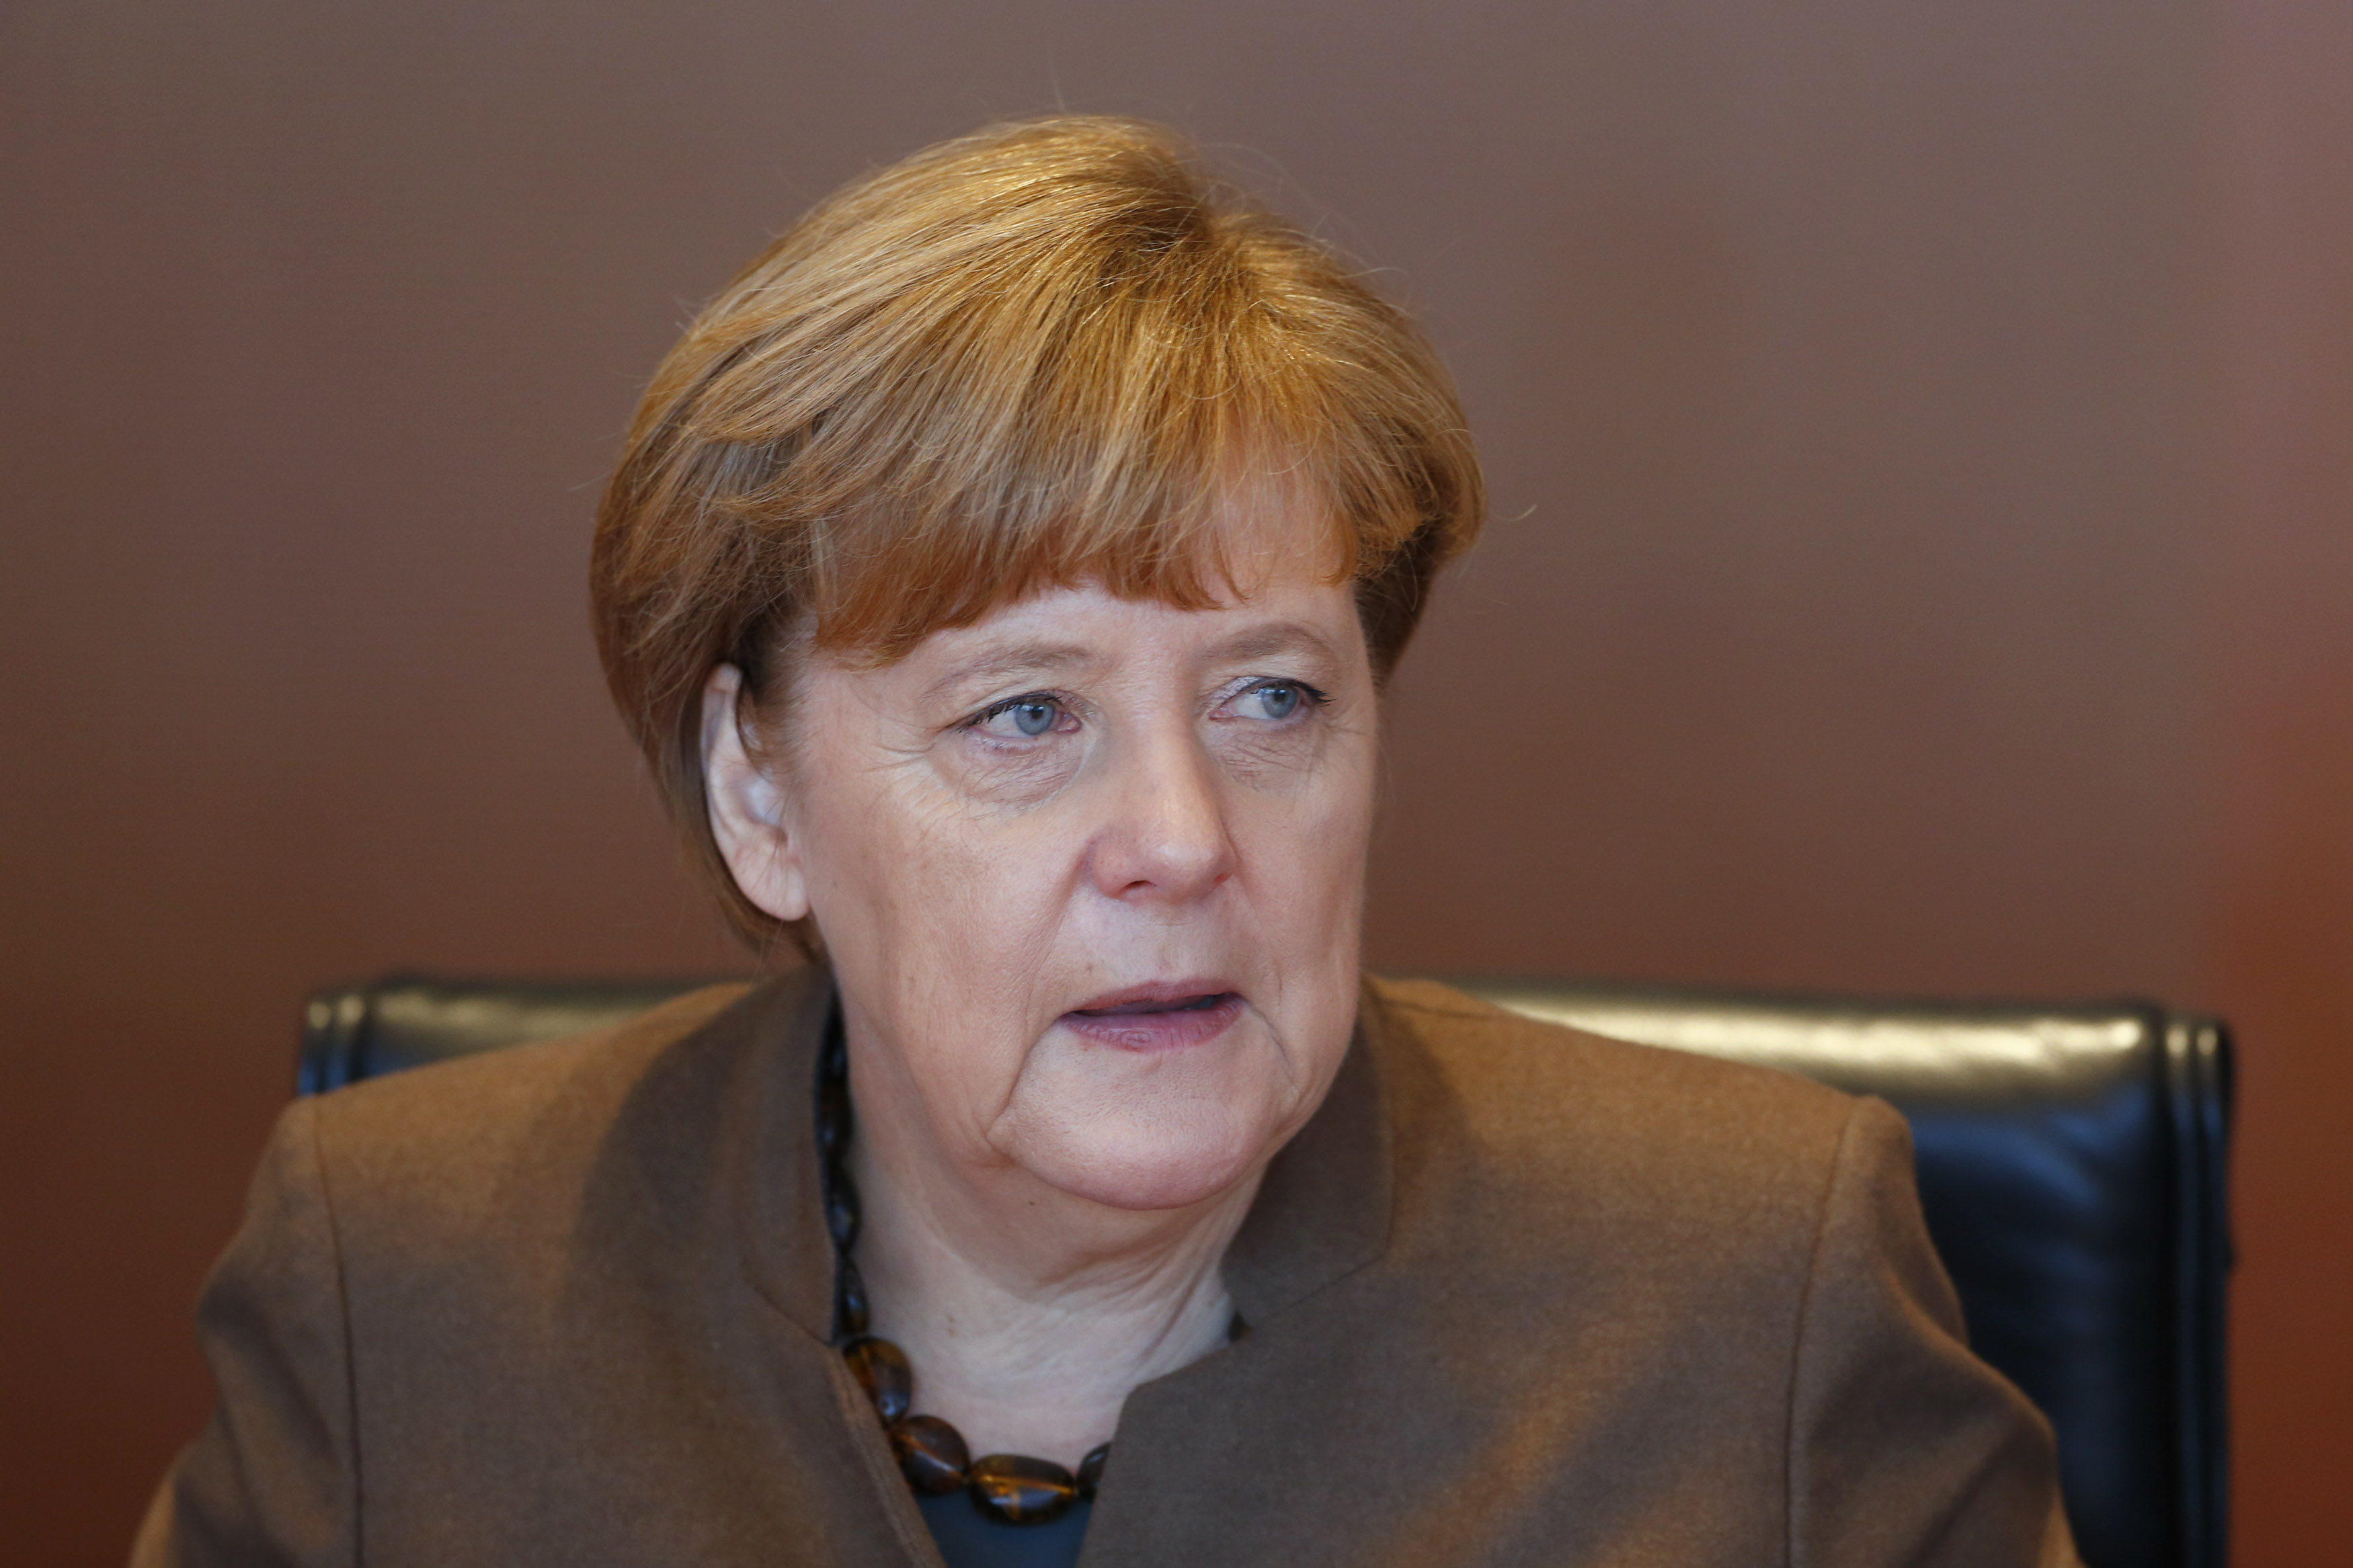 German Chancellor Angela Merkel arrives for the weekly cabinet meeting at the Chancellery in Berlin, Germany November 18, 2015. Merkel and her top ministers will hold a special meeting on security issues on Wednesday after an international soccer match was cancelled on Tuesday evening on fears of a planned attack, two government sources said.    REUTERS/Hannibal Hanschke